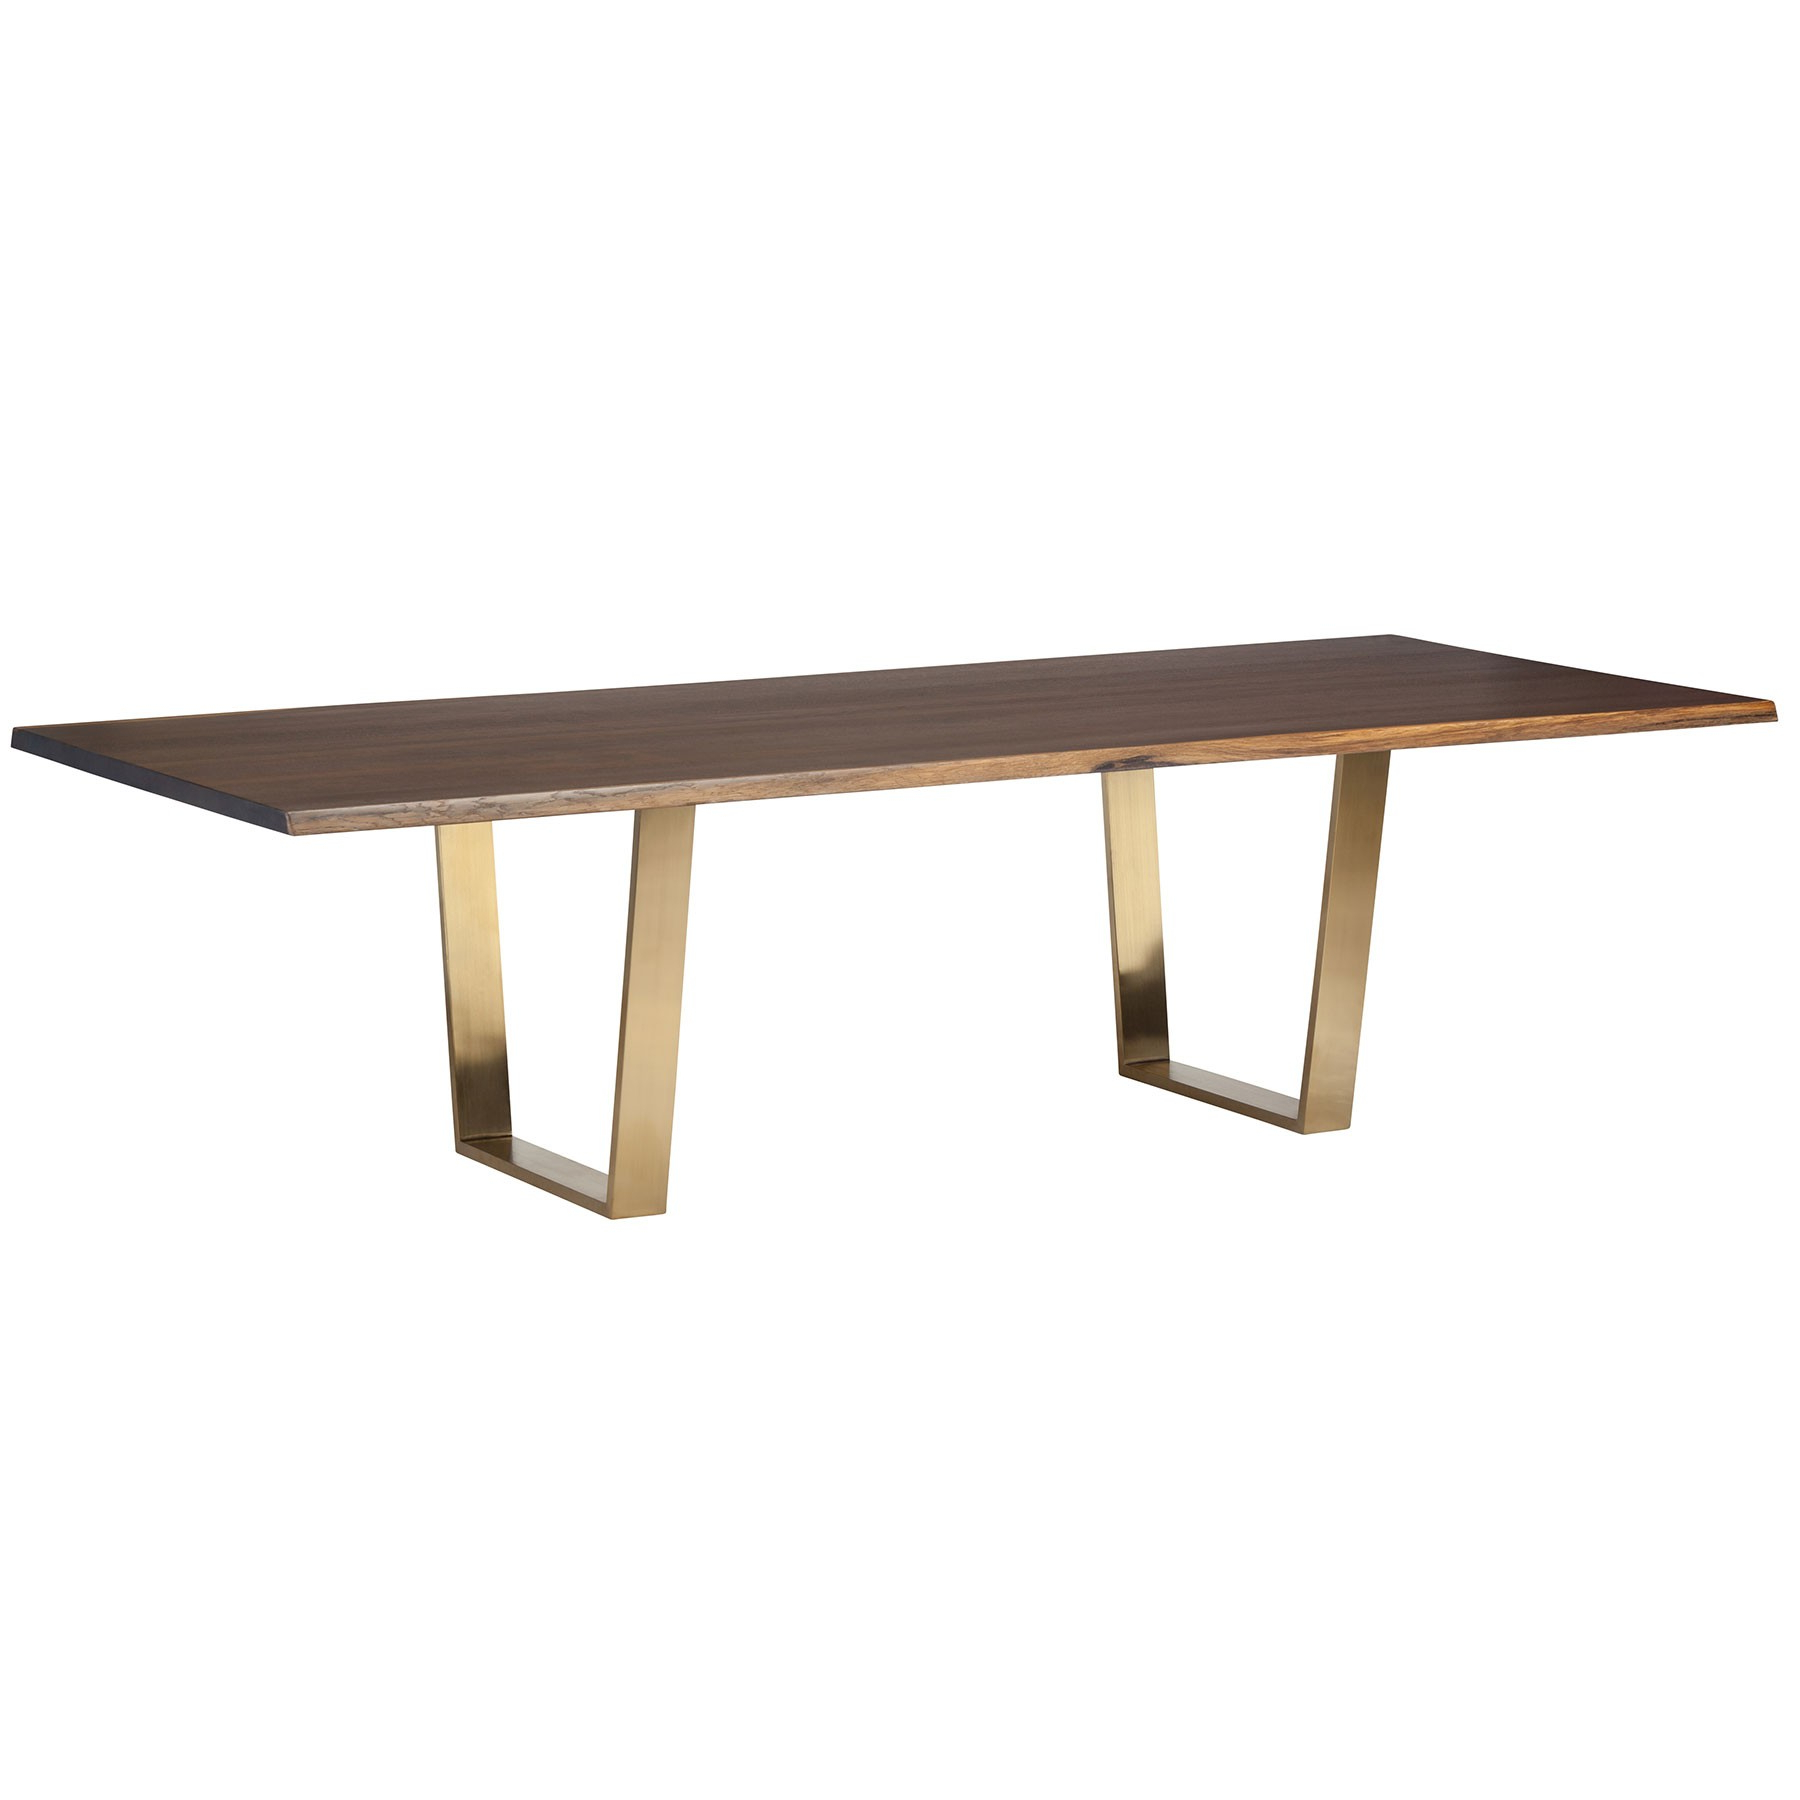 Best And Newest Dining Tables In Seared Oak With Brass Detail Within Versailles Dining Table – Seared Oak / Gold (View 8 of 30)